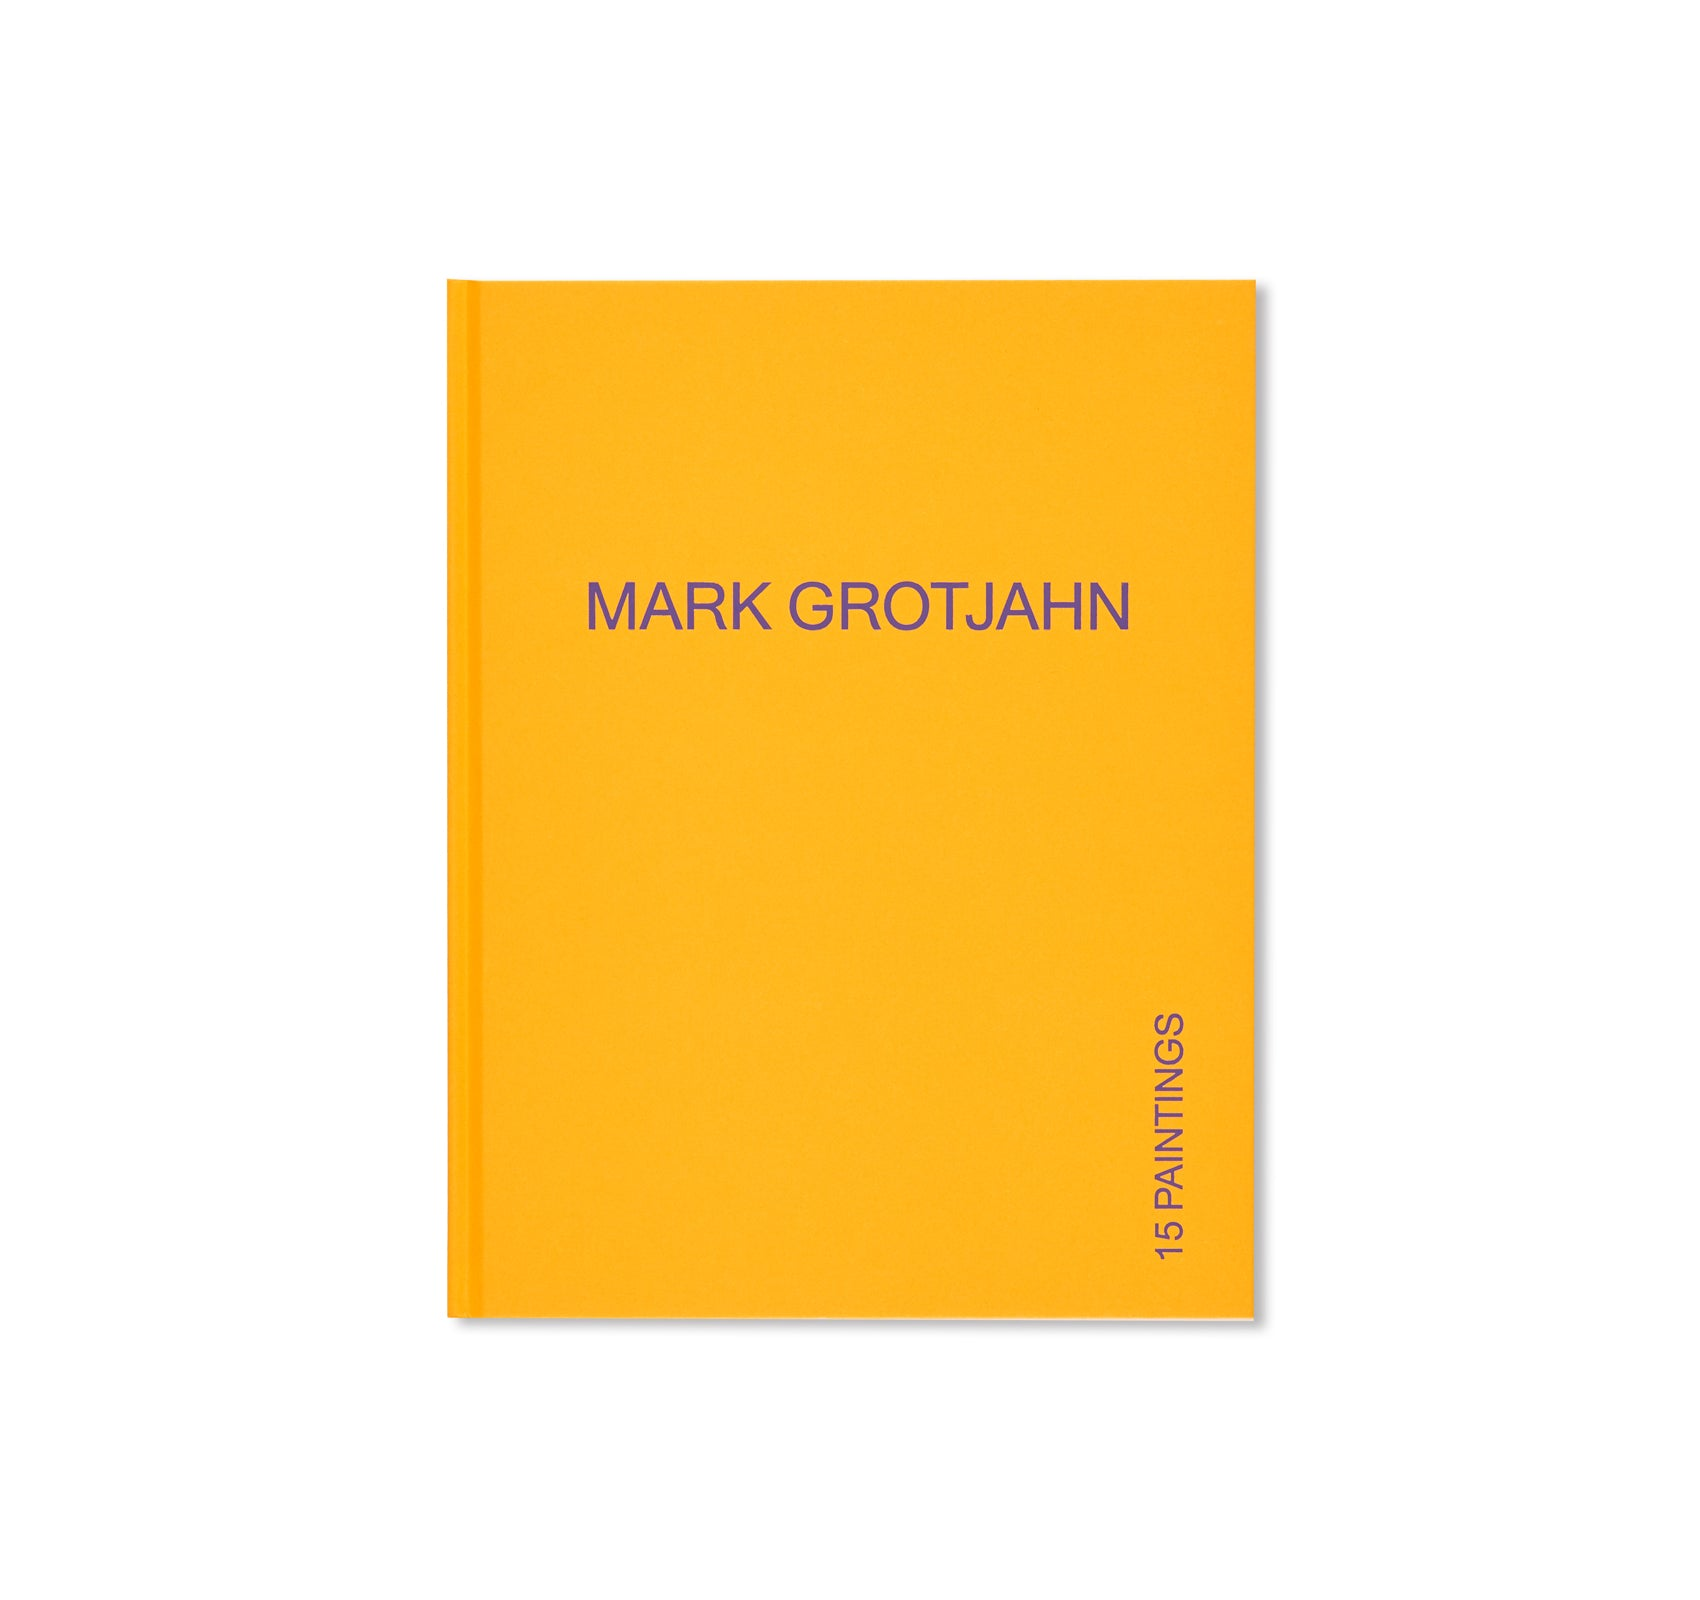 15 PAINTINGS by Mark Grotjahn